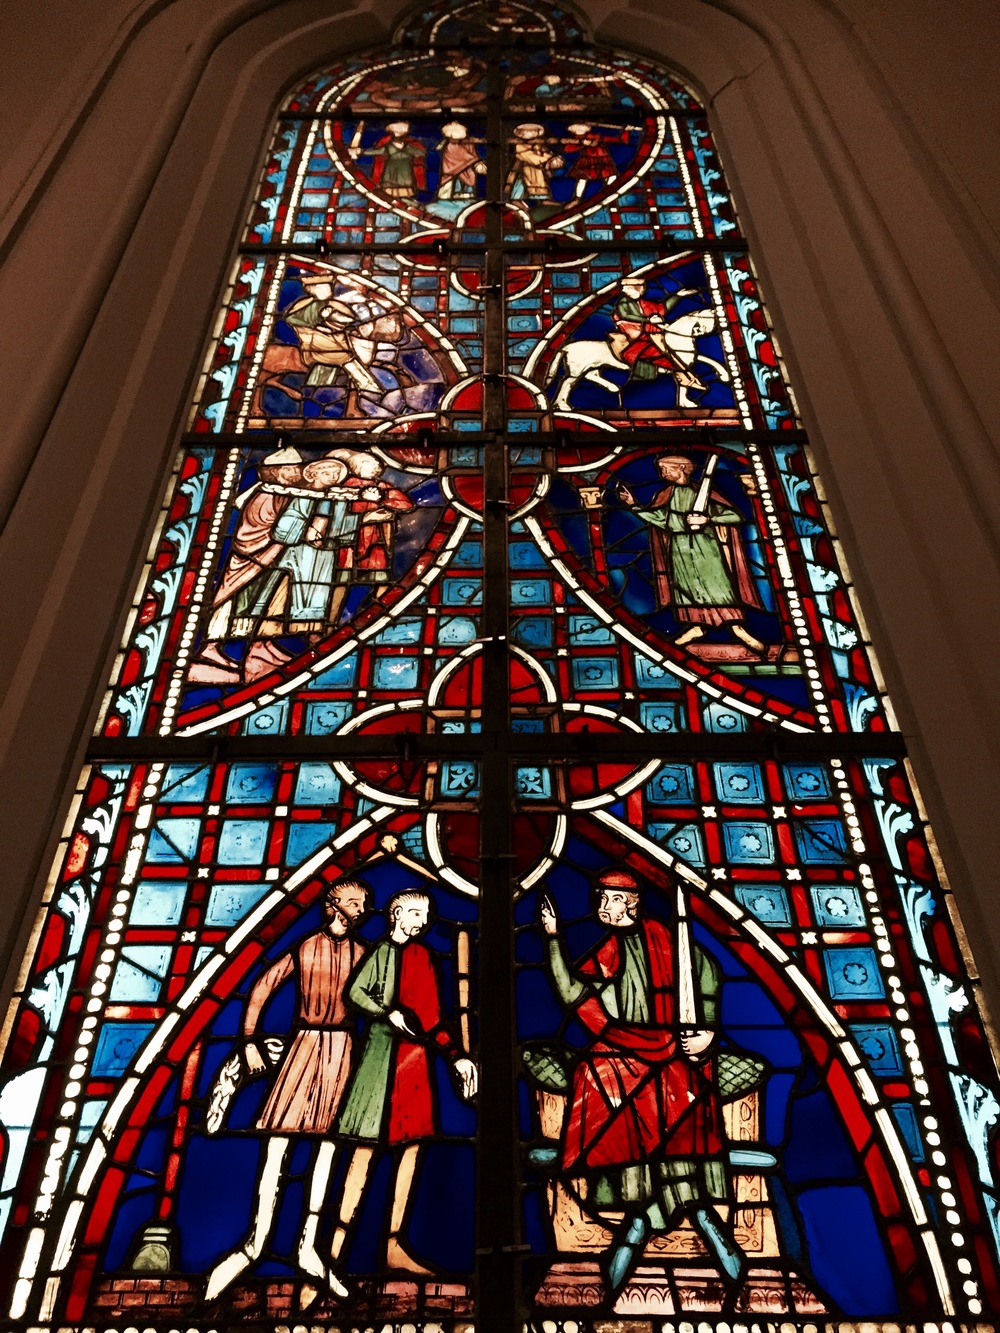 A stained glass window in the Metropolitan Museum of Art.